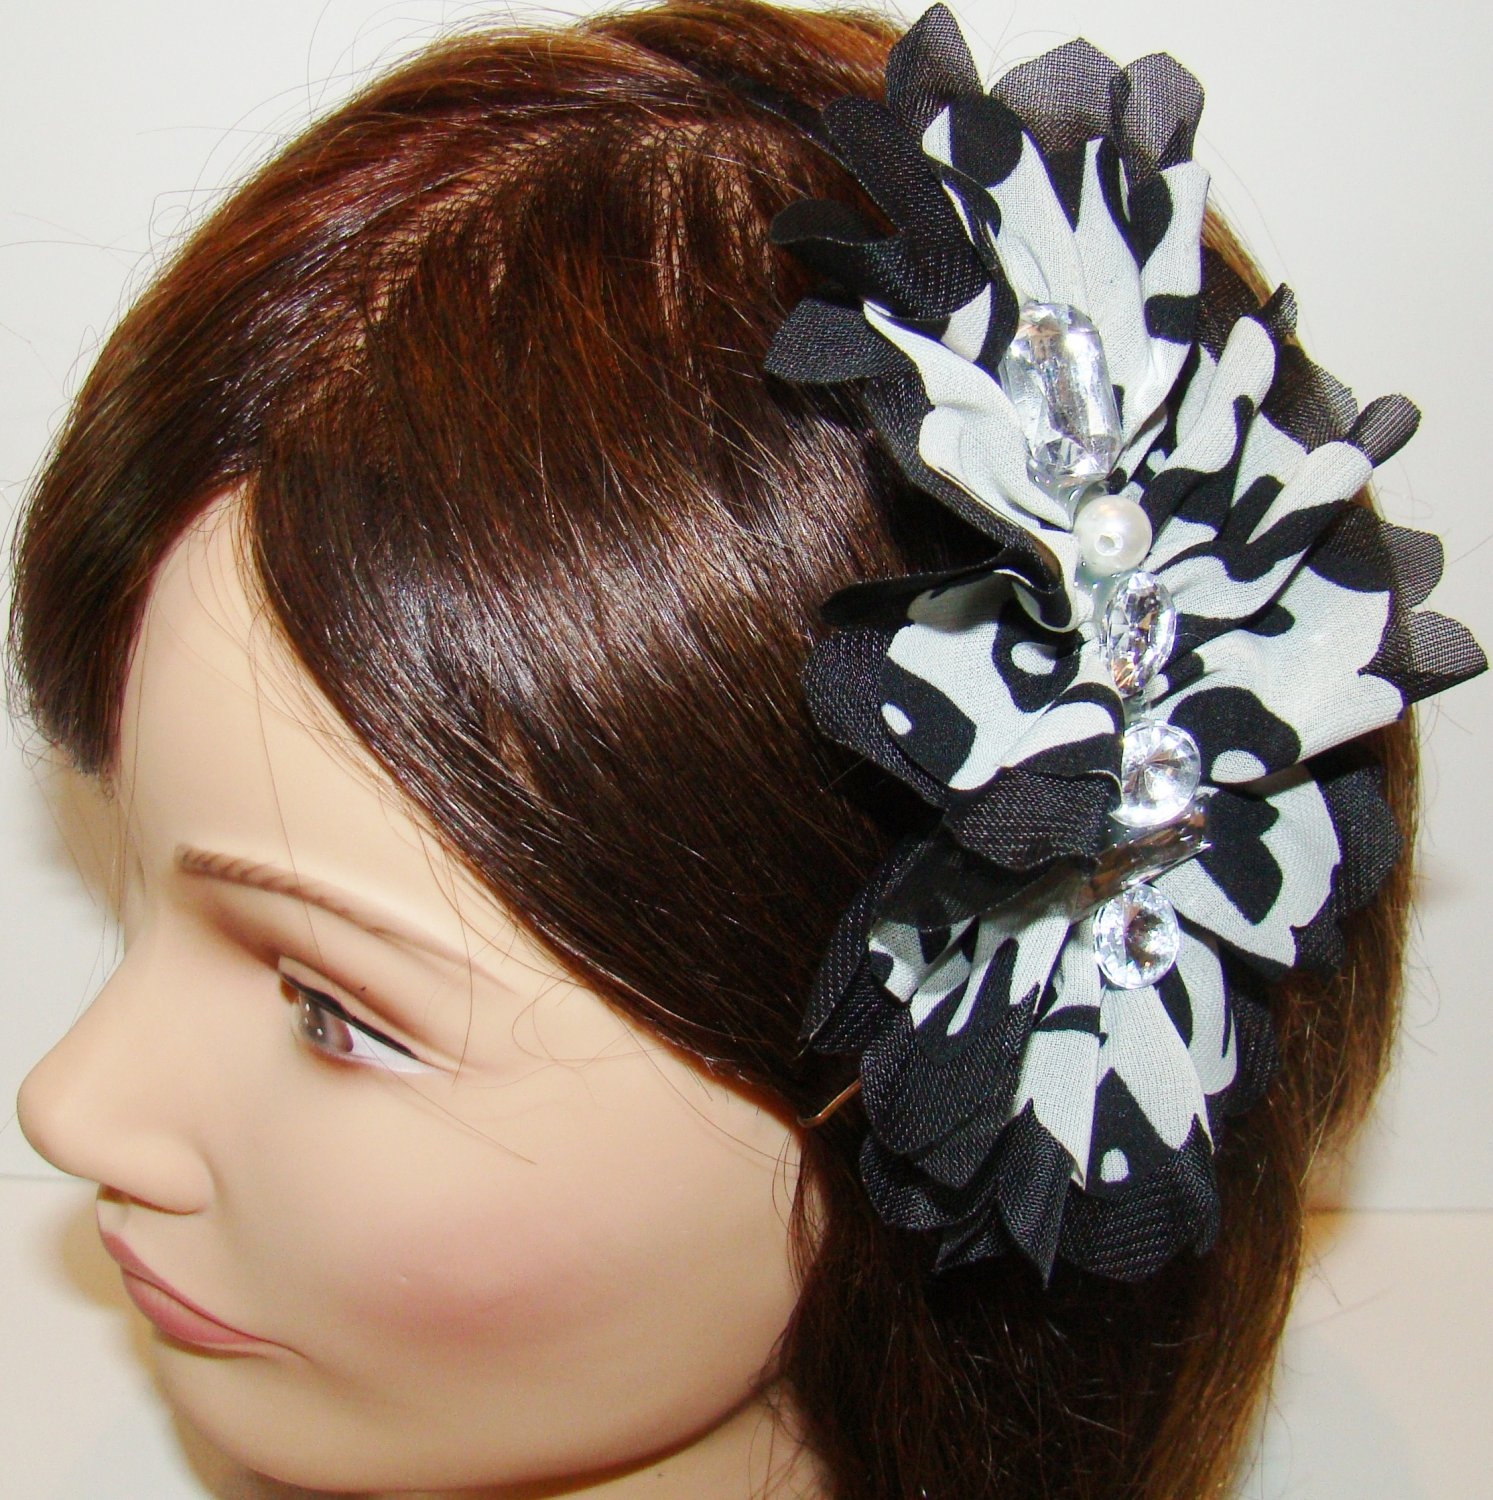 Rhinestones Faux Pearl Black Gray Side Ruffle Fabric Black Headband Fashion Hair Accessory